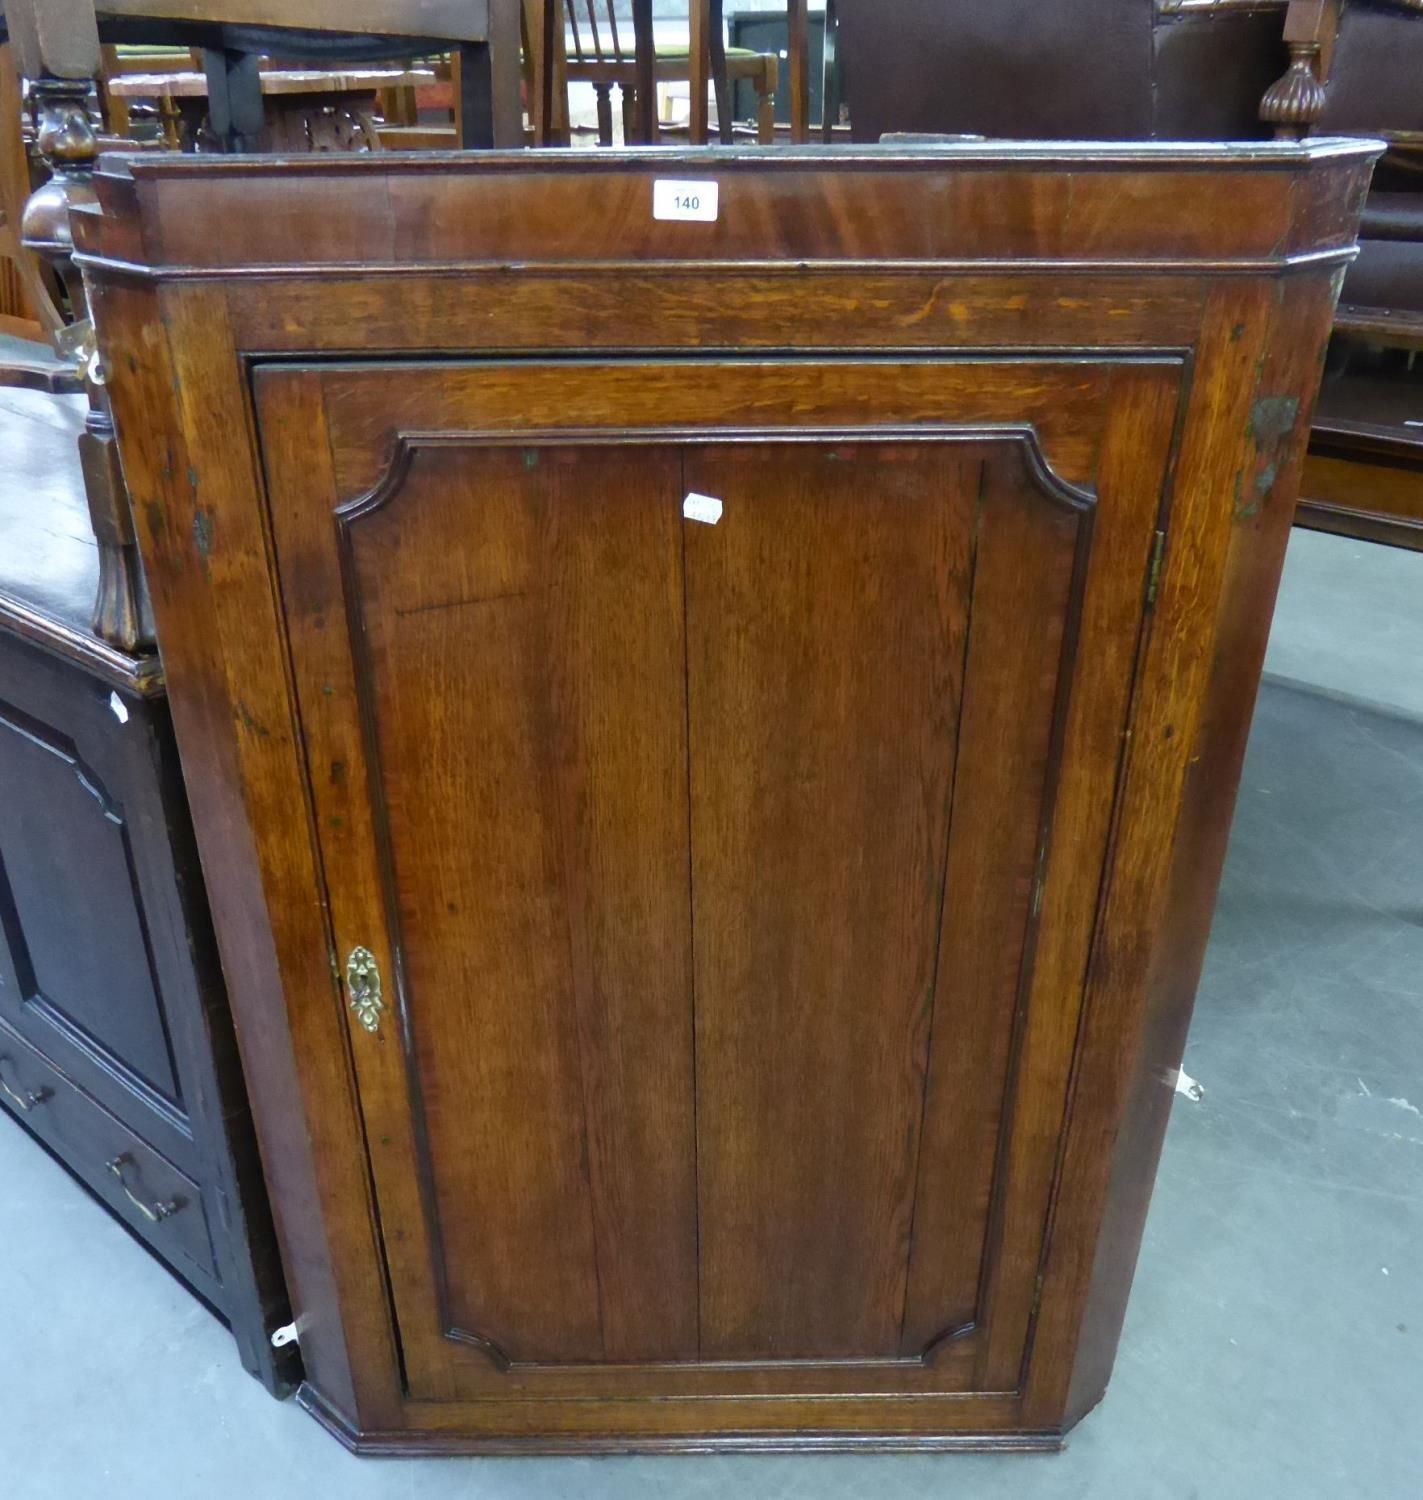 A LARGE GEORGE III OAK AND MAHOGANY CROSSBANDED HANGING CORNER CUPBOARD